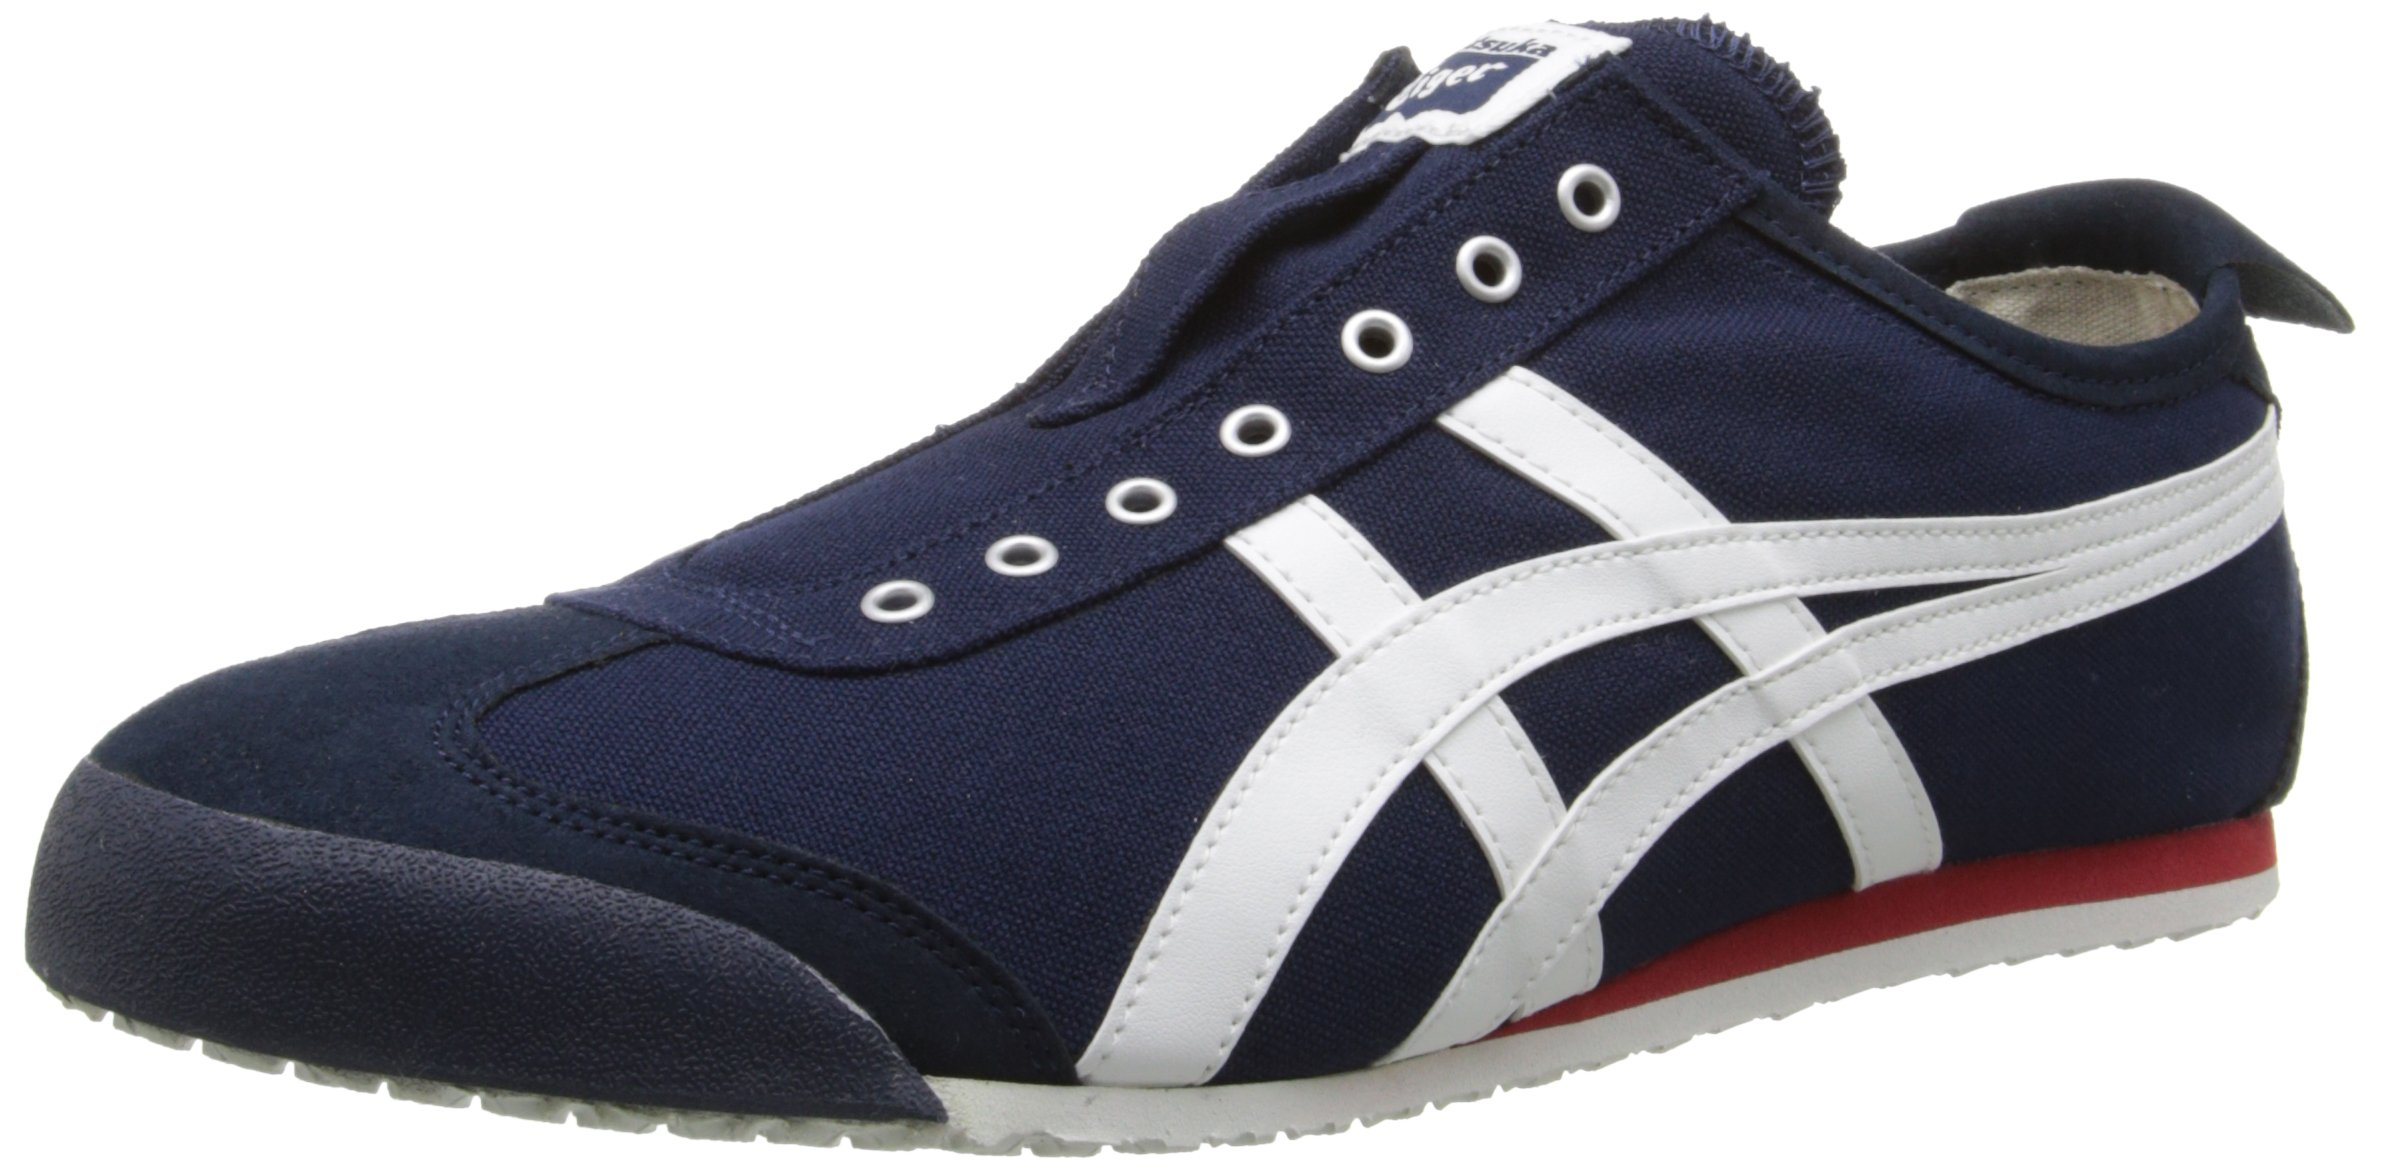 Onitsuka Tiger Unisex Mexico 66 Slip-on Shoes D3K0N, Navy/Off White, 9.5 M US